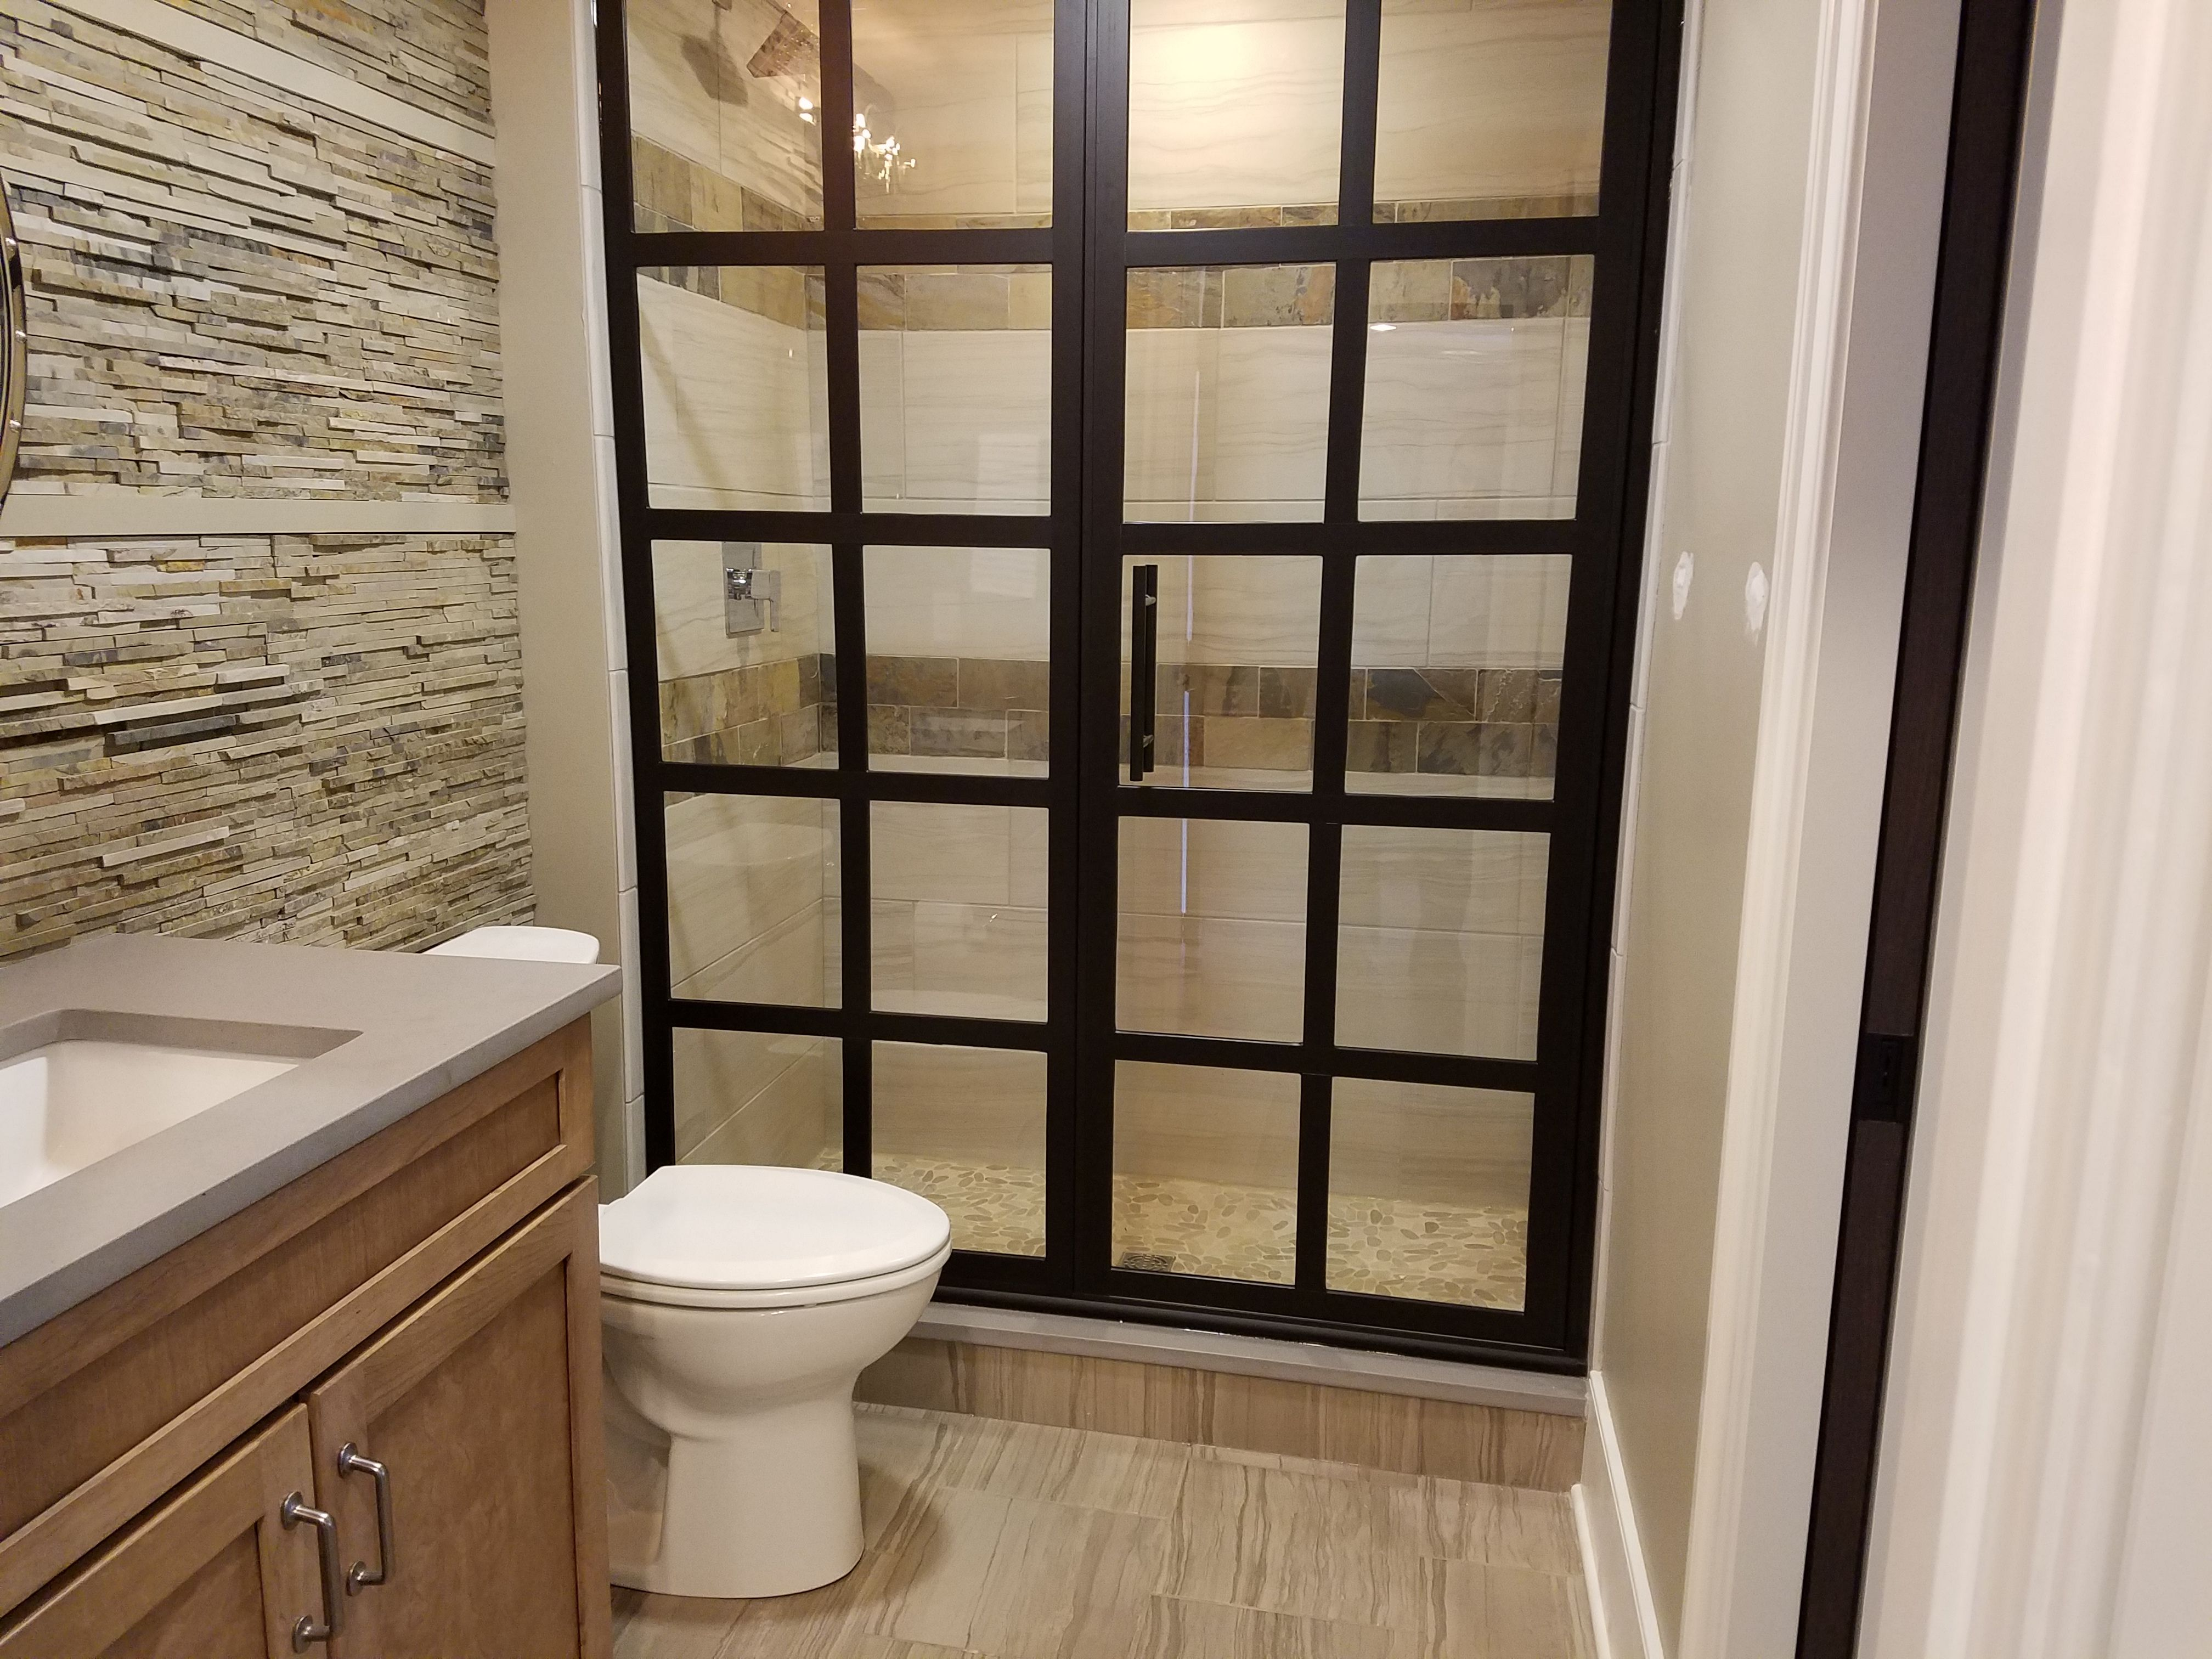 Walltile Wednesday Features A Gorgeous Bathroom